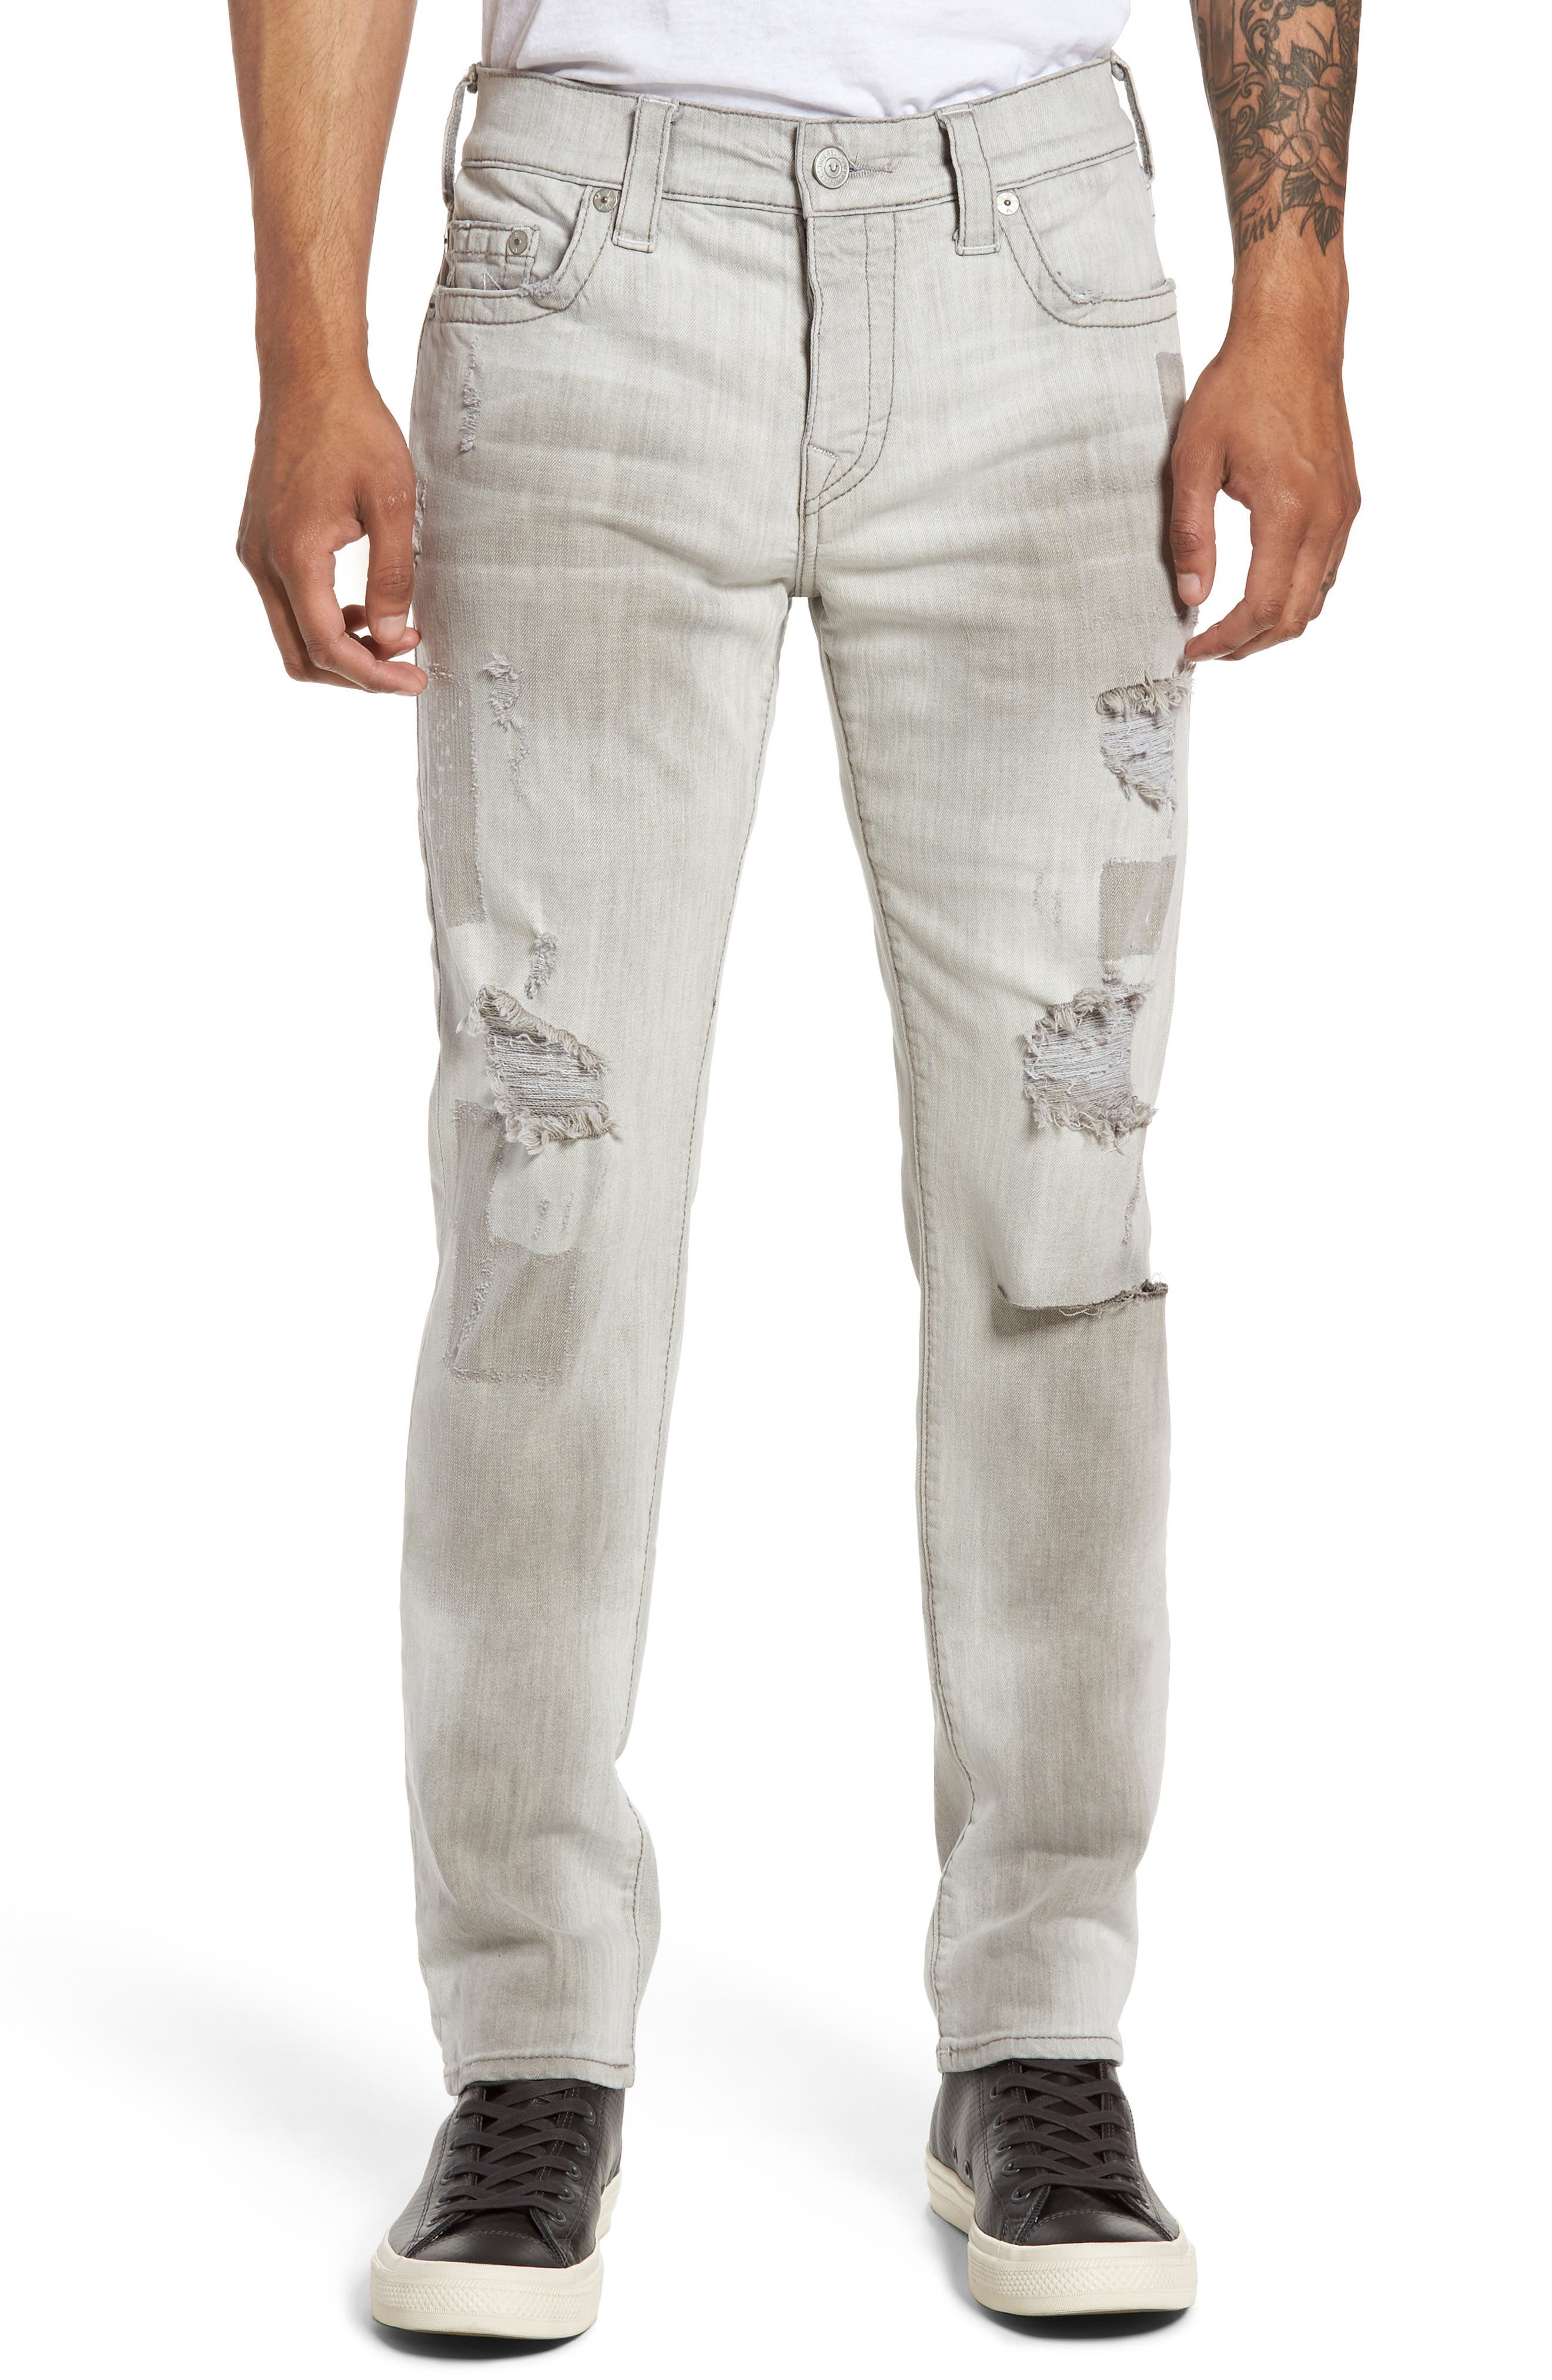 Rocco Skinny Fit Jeans,                             Main thumbnail 1, color,                             406